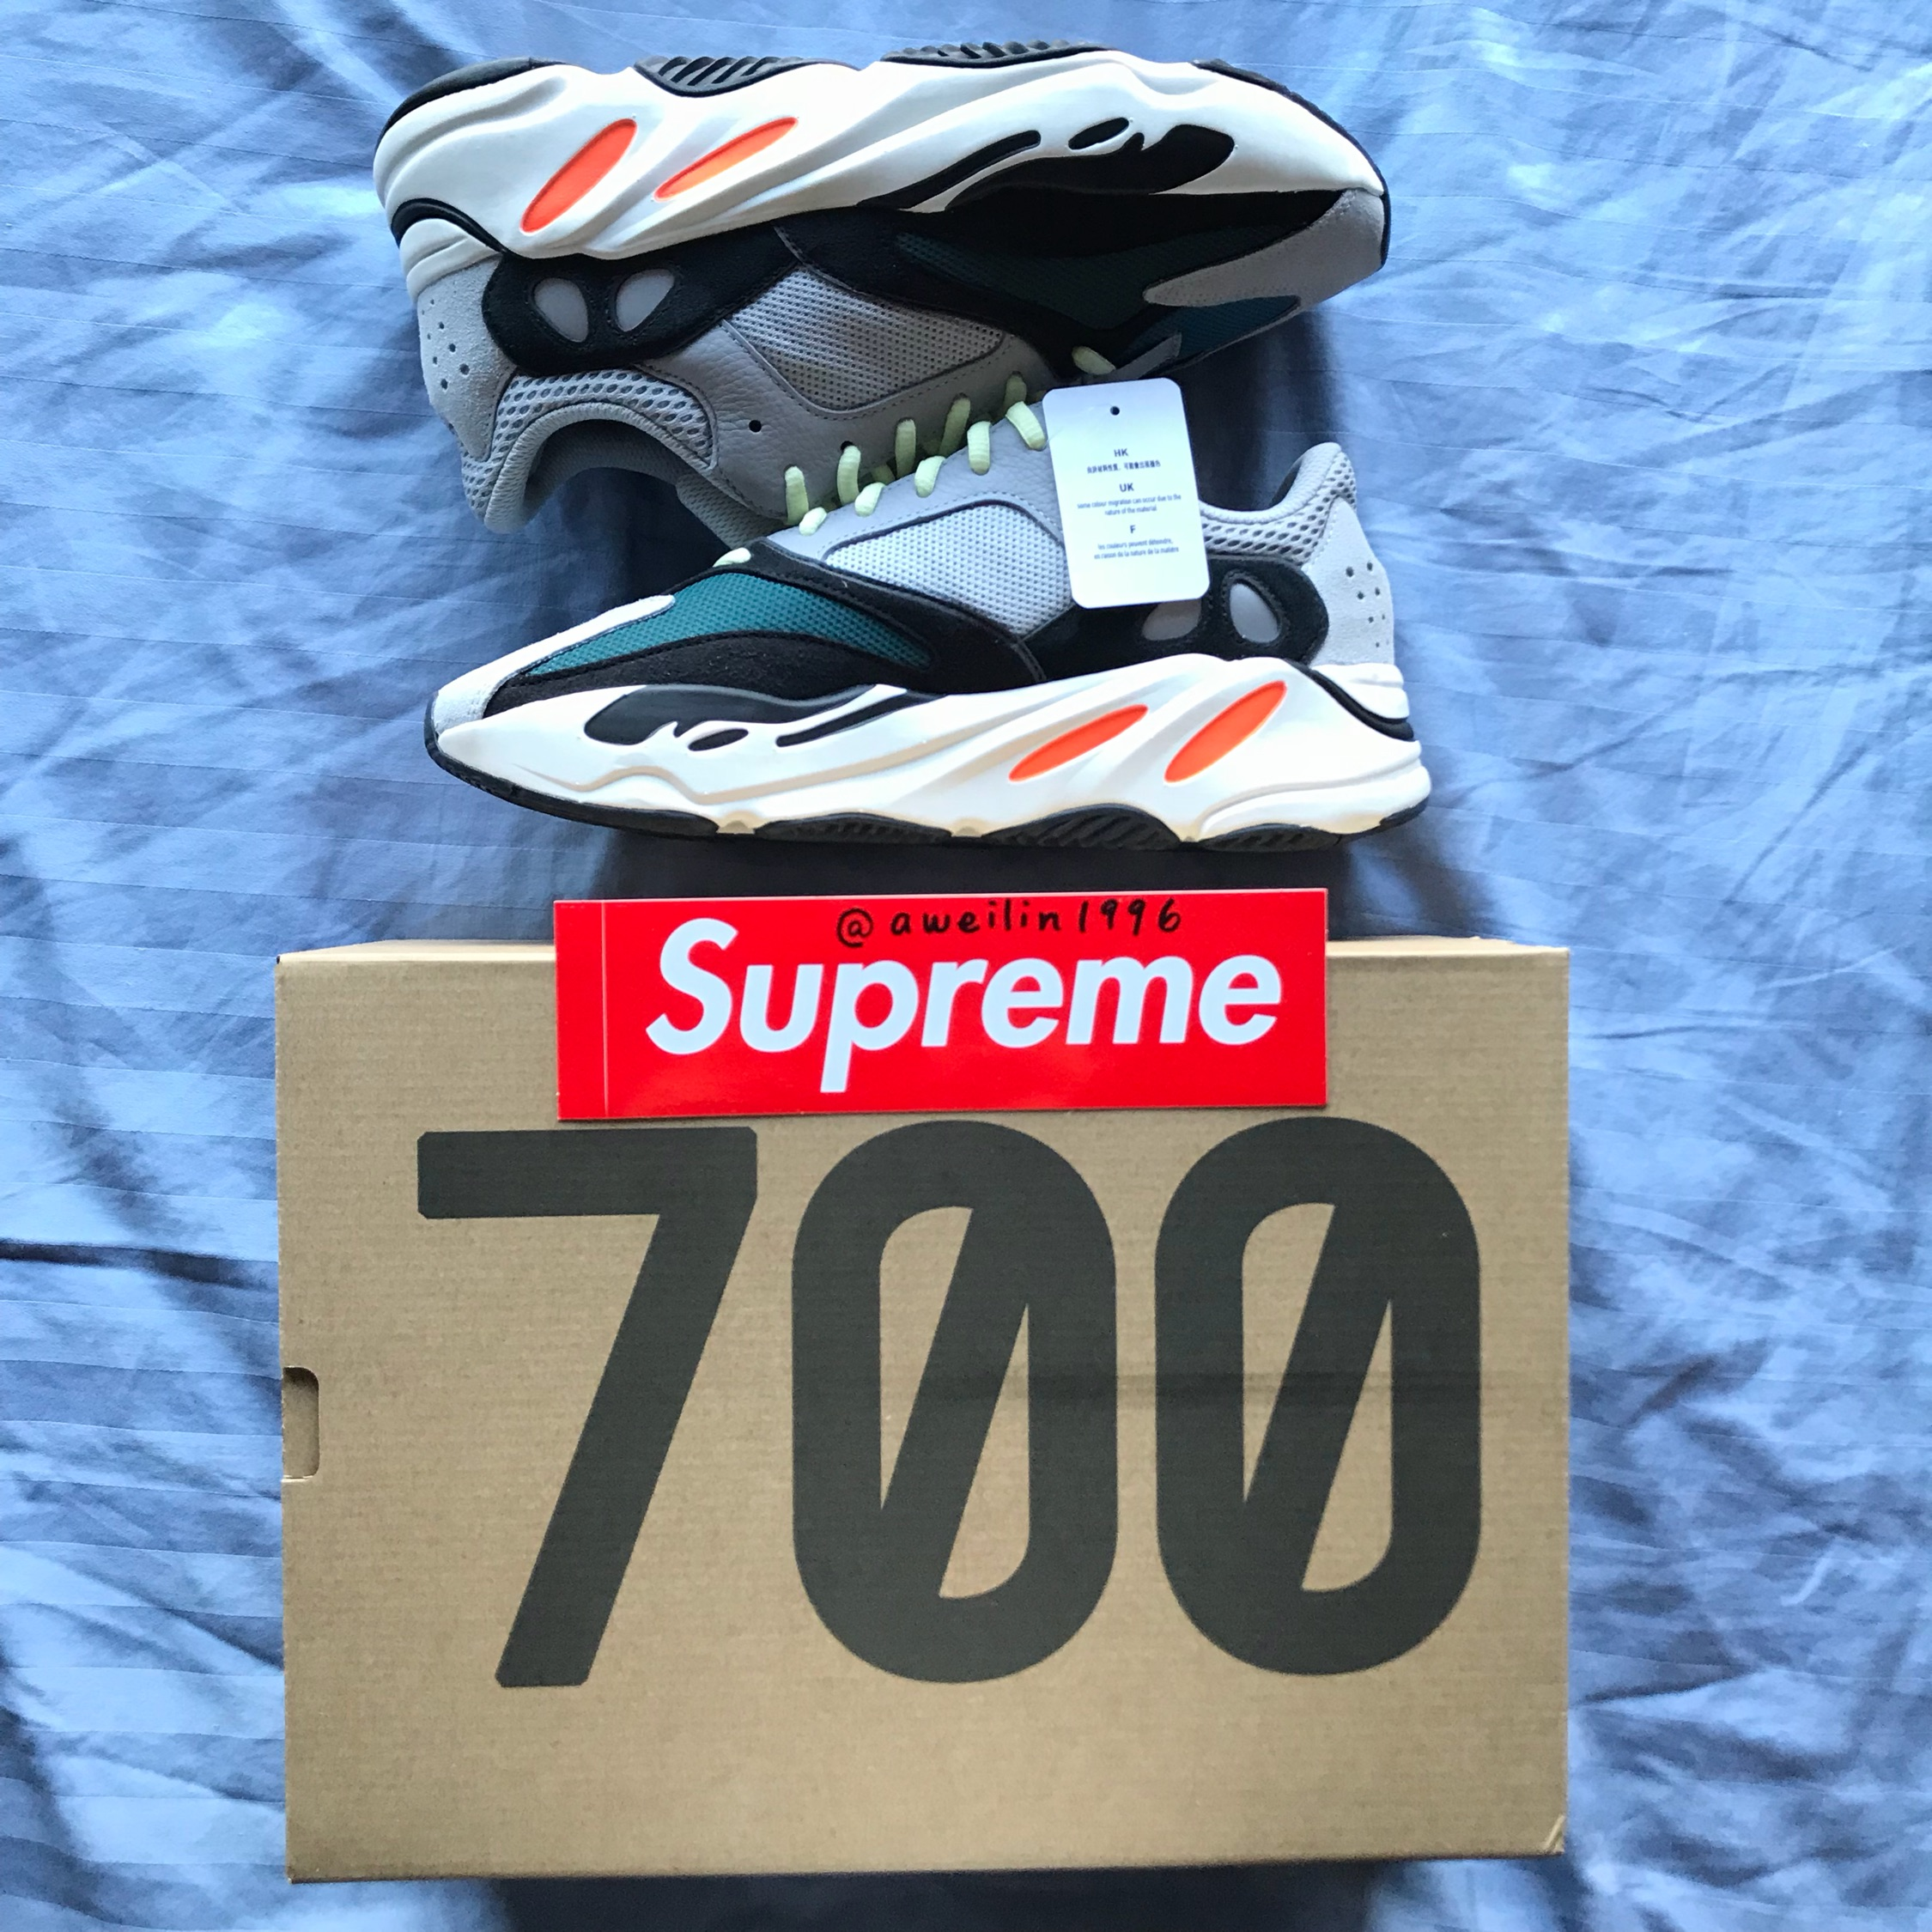 finest selection b03c5 2e124 Adidas Yeezy Wave Runner 700 Solid Grey